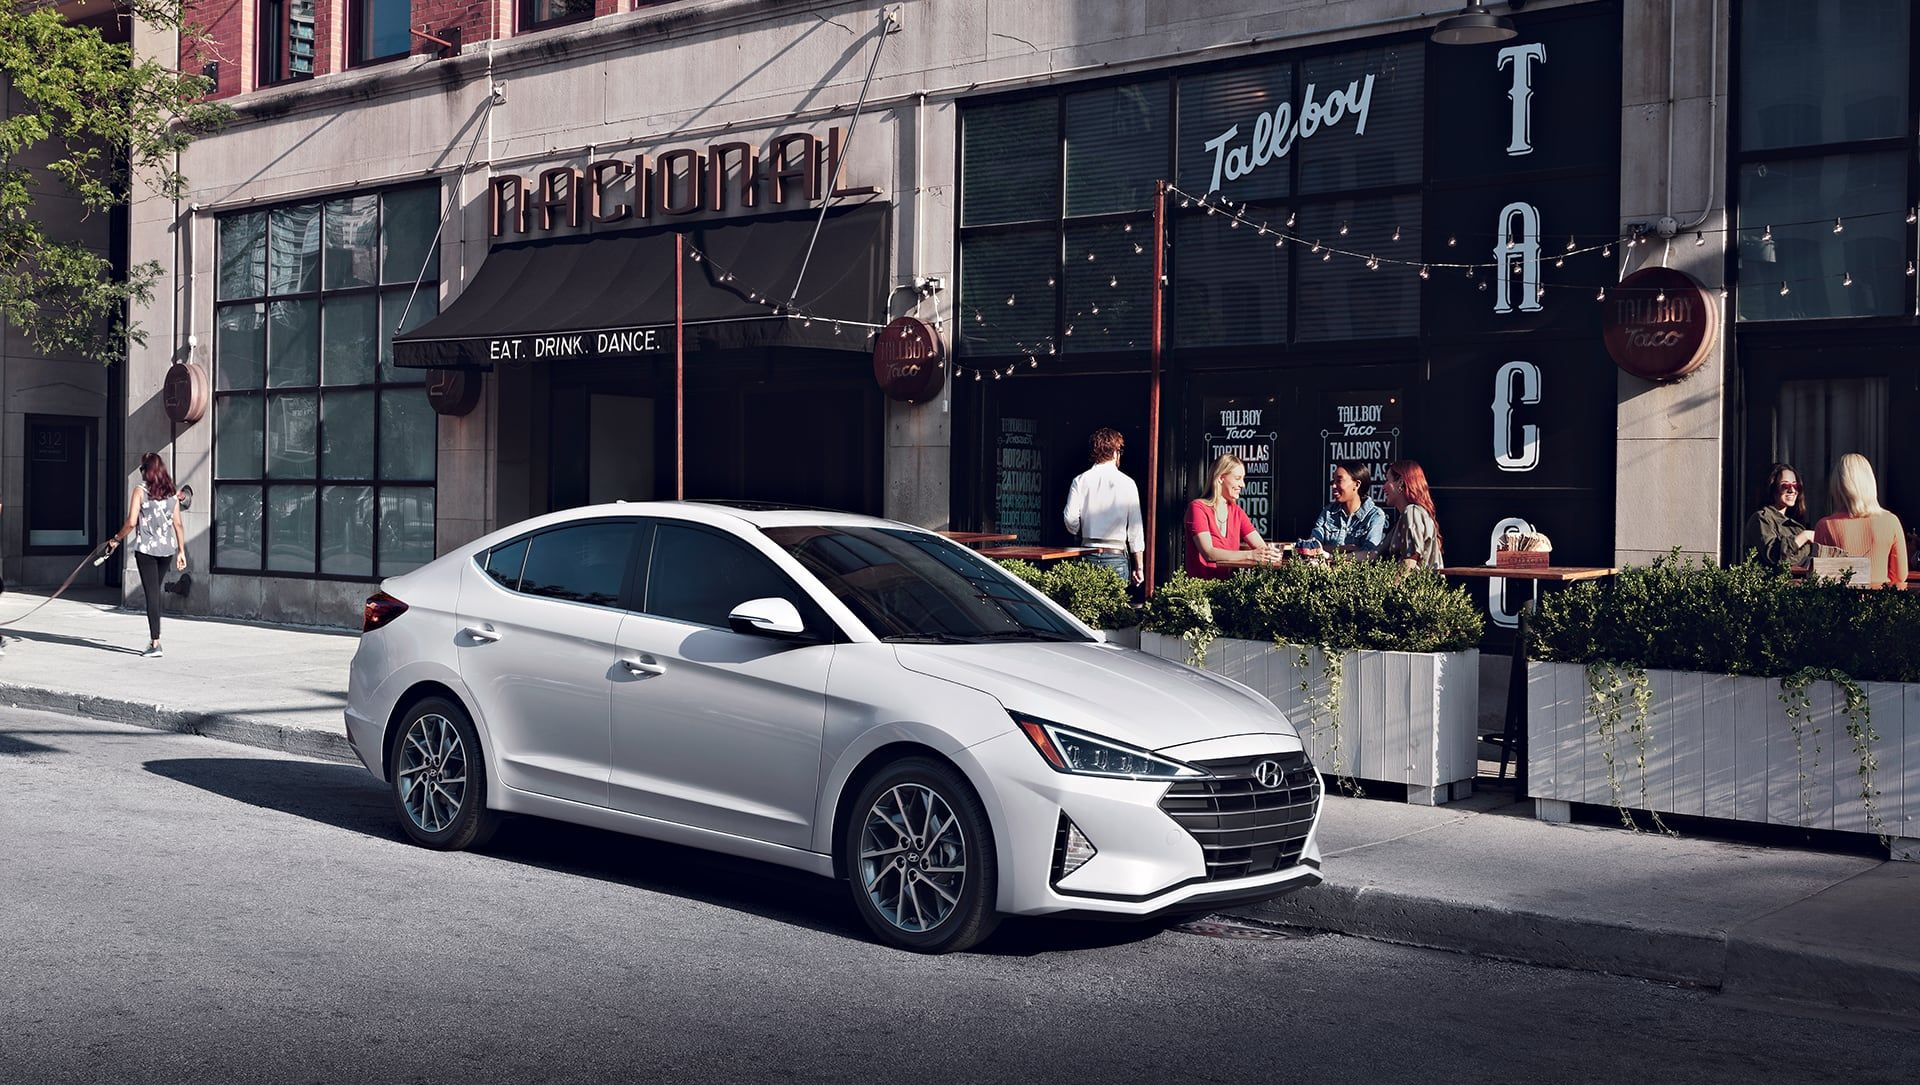 2019 Hyundai Elantra Leasing near Laurel, MD